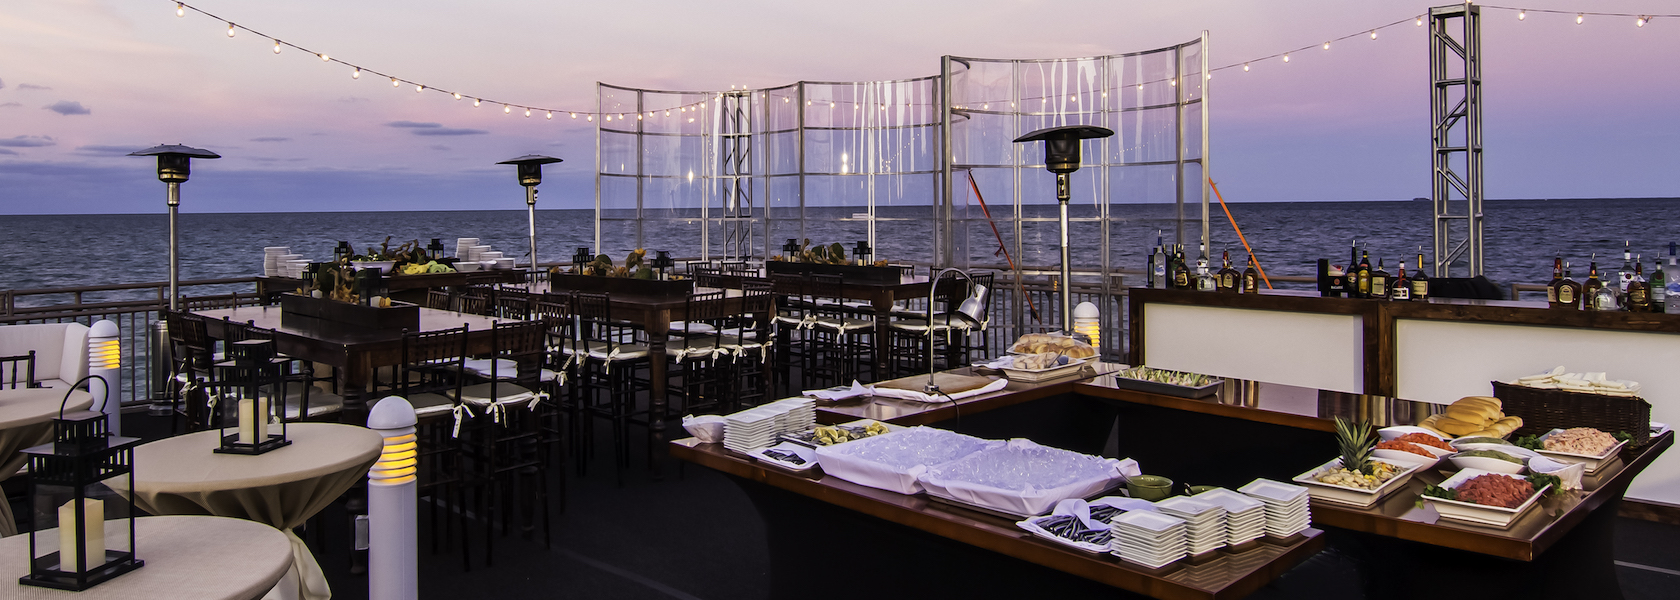 Party setting outdoors by the Ocean at the Newport Beachside Hotel and Resort